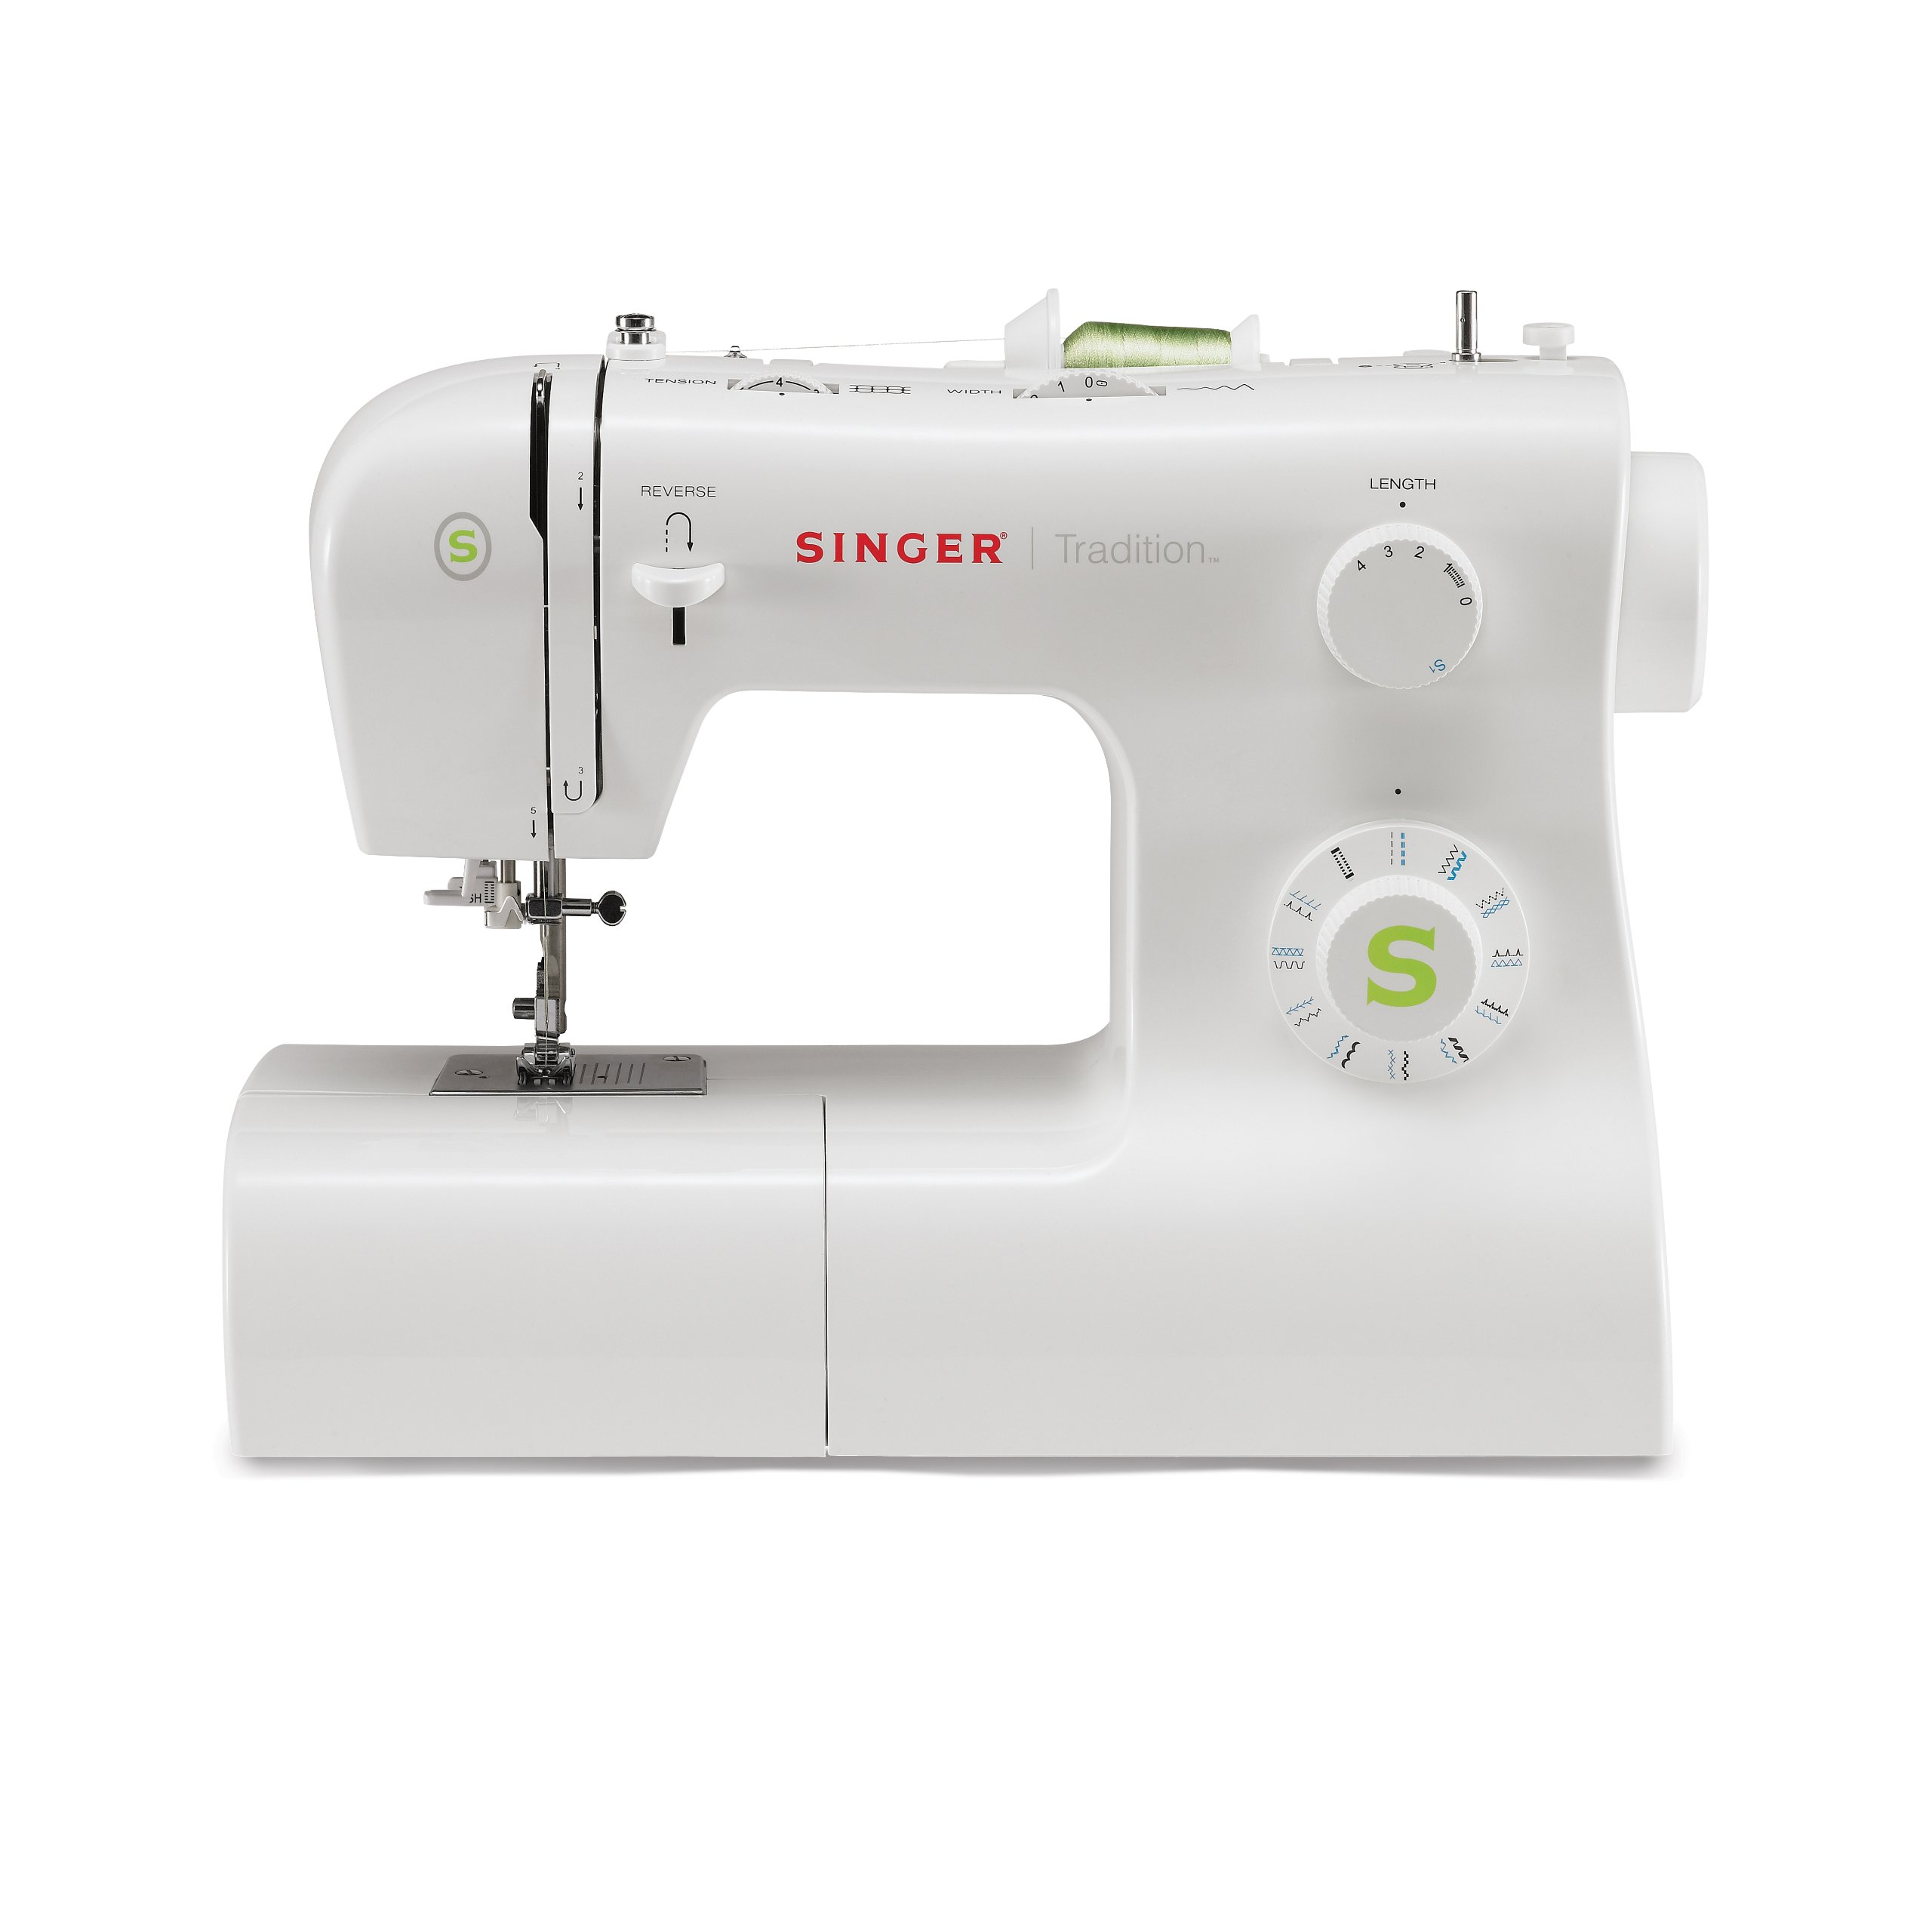 SINGER | Tradition 2277 Sewing Machine including 23 Built-In Stitches, Automatic Needle Threader, Snap-On Presser Feet, Automatic Tension, perfect for sewing all types of fabrics with ease by SINGER